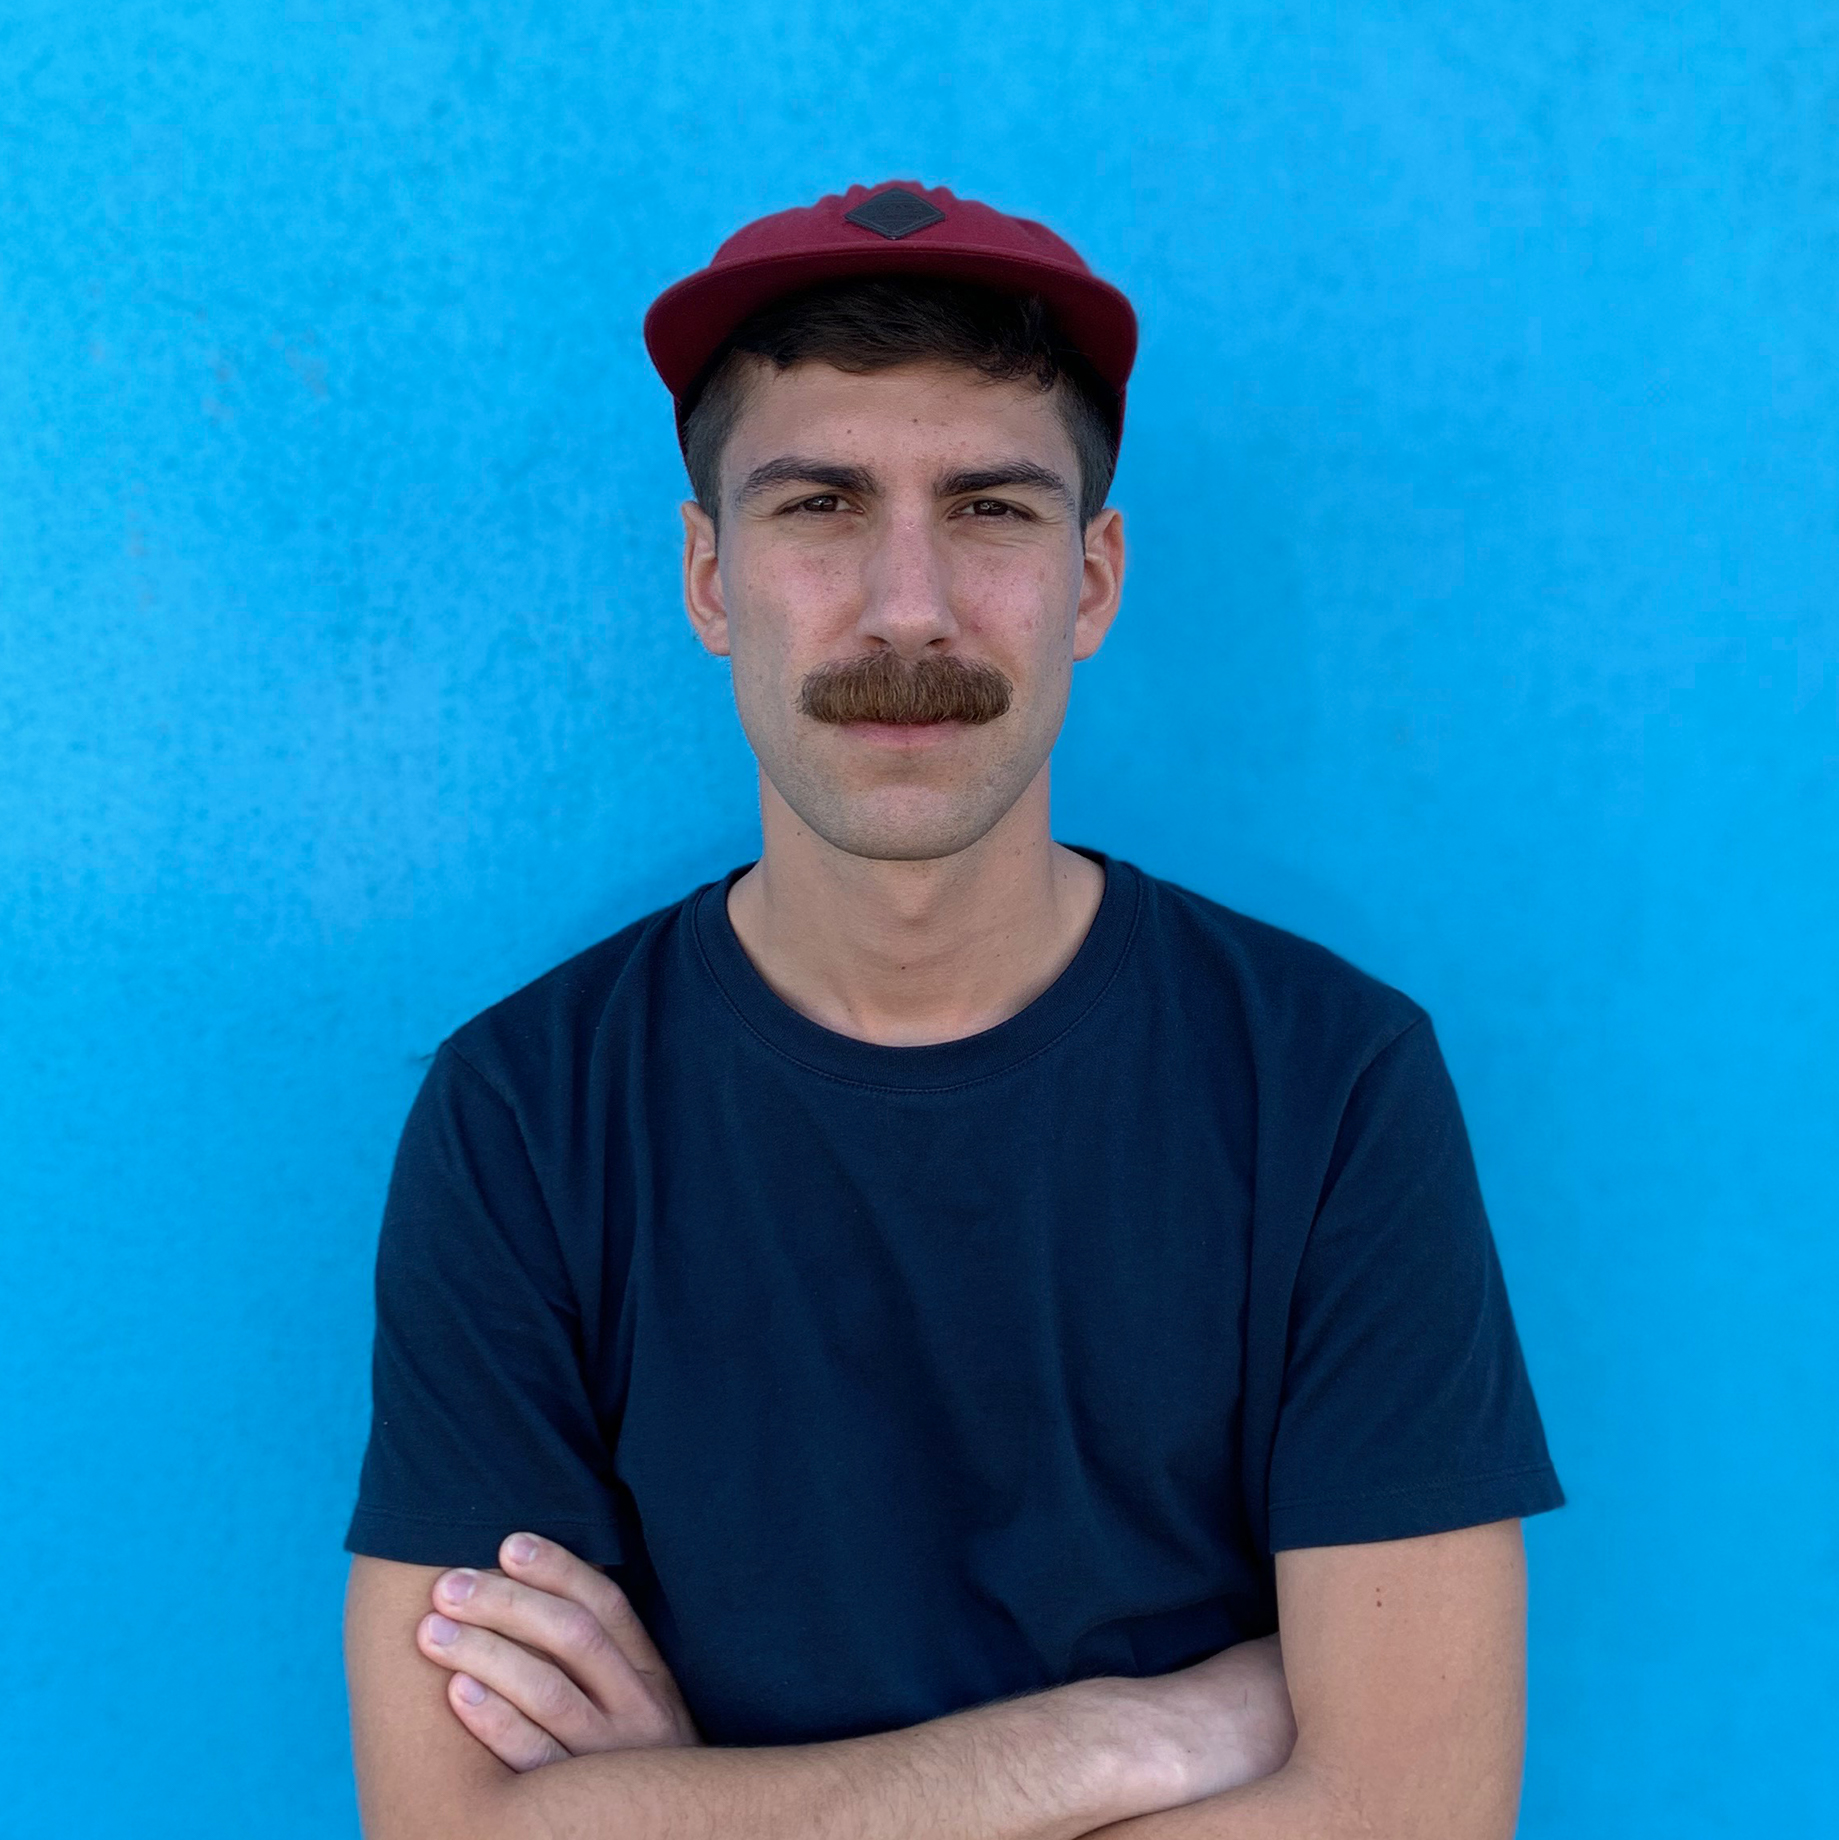 ARTHUR BRATES - Designer  Arthur holds a B.E. in Mechanical Engineering from the City College of New York. Before starting at Square Design, he worked as a design engineer for a small manufacturing firm in Brooklyn, as well as a part-time woodworker and fabricator. When he's not at work, Arthur can be found shredding around Brooklyn on his skateboard or else at home tending to his scrapes and bruises.